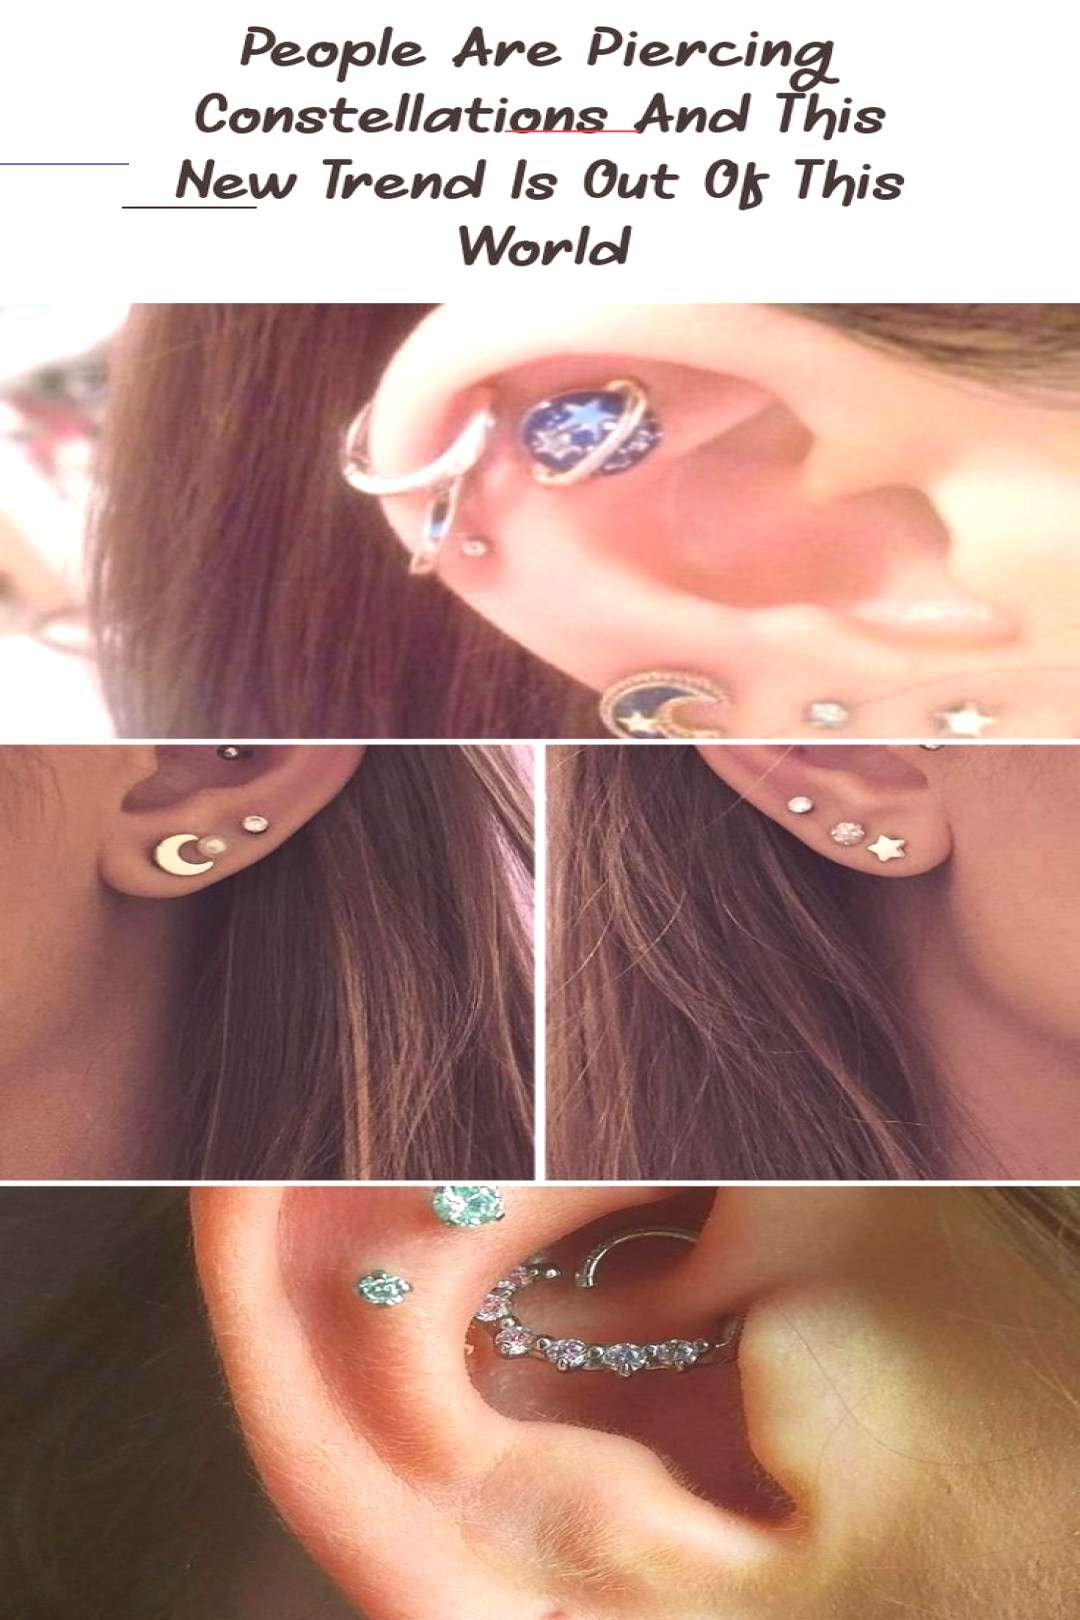 People Are Piercing Constellations And This New Trend Is Out Of This World - PIE... ,